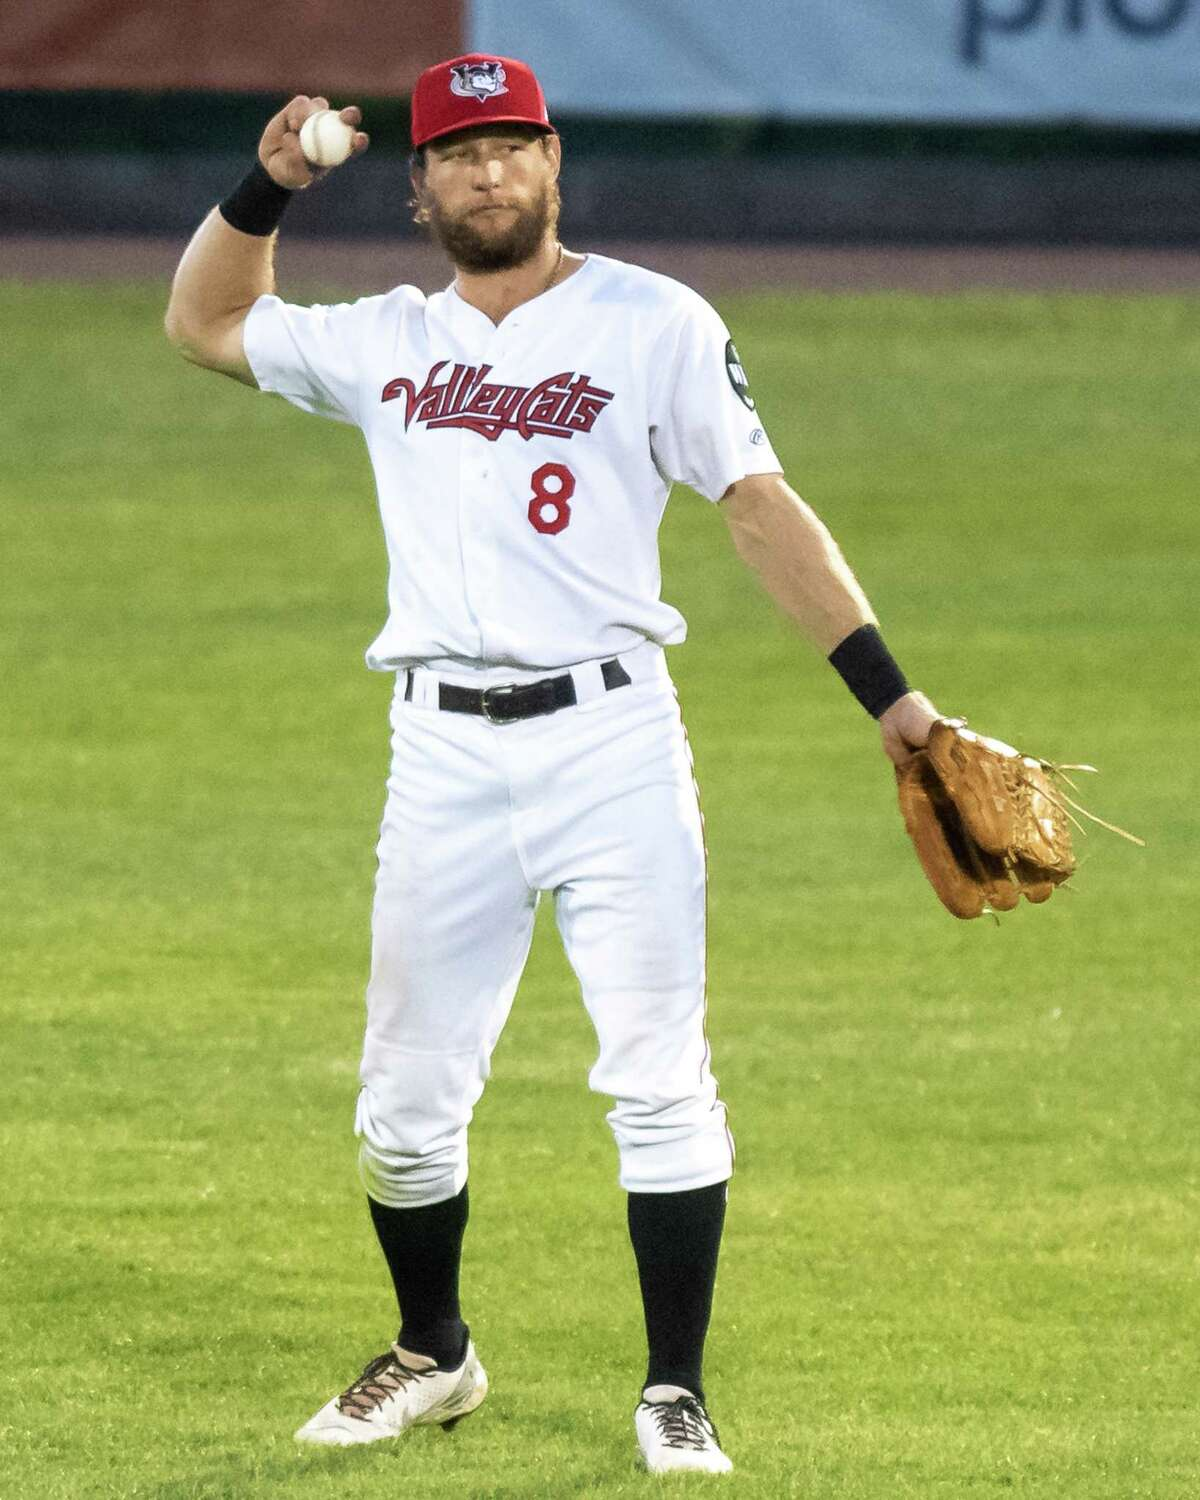 Tri-City ValleyCats centerfielder Connor Lien against the New York Boulders at the Joseph L. Bruno Stadium on the Hudson Valley Community College campus in Troy, NY, on Tuesday, Aug. 17, 2021 (Jim Franco/Special to the Times Union)